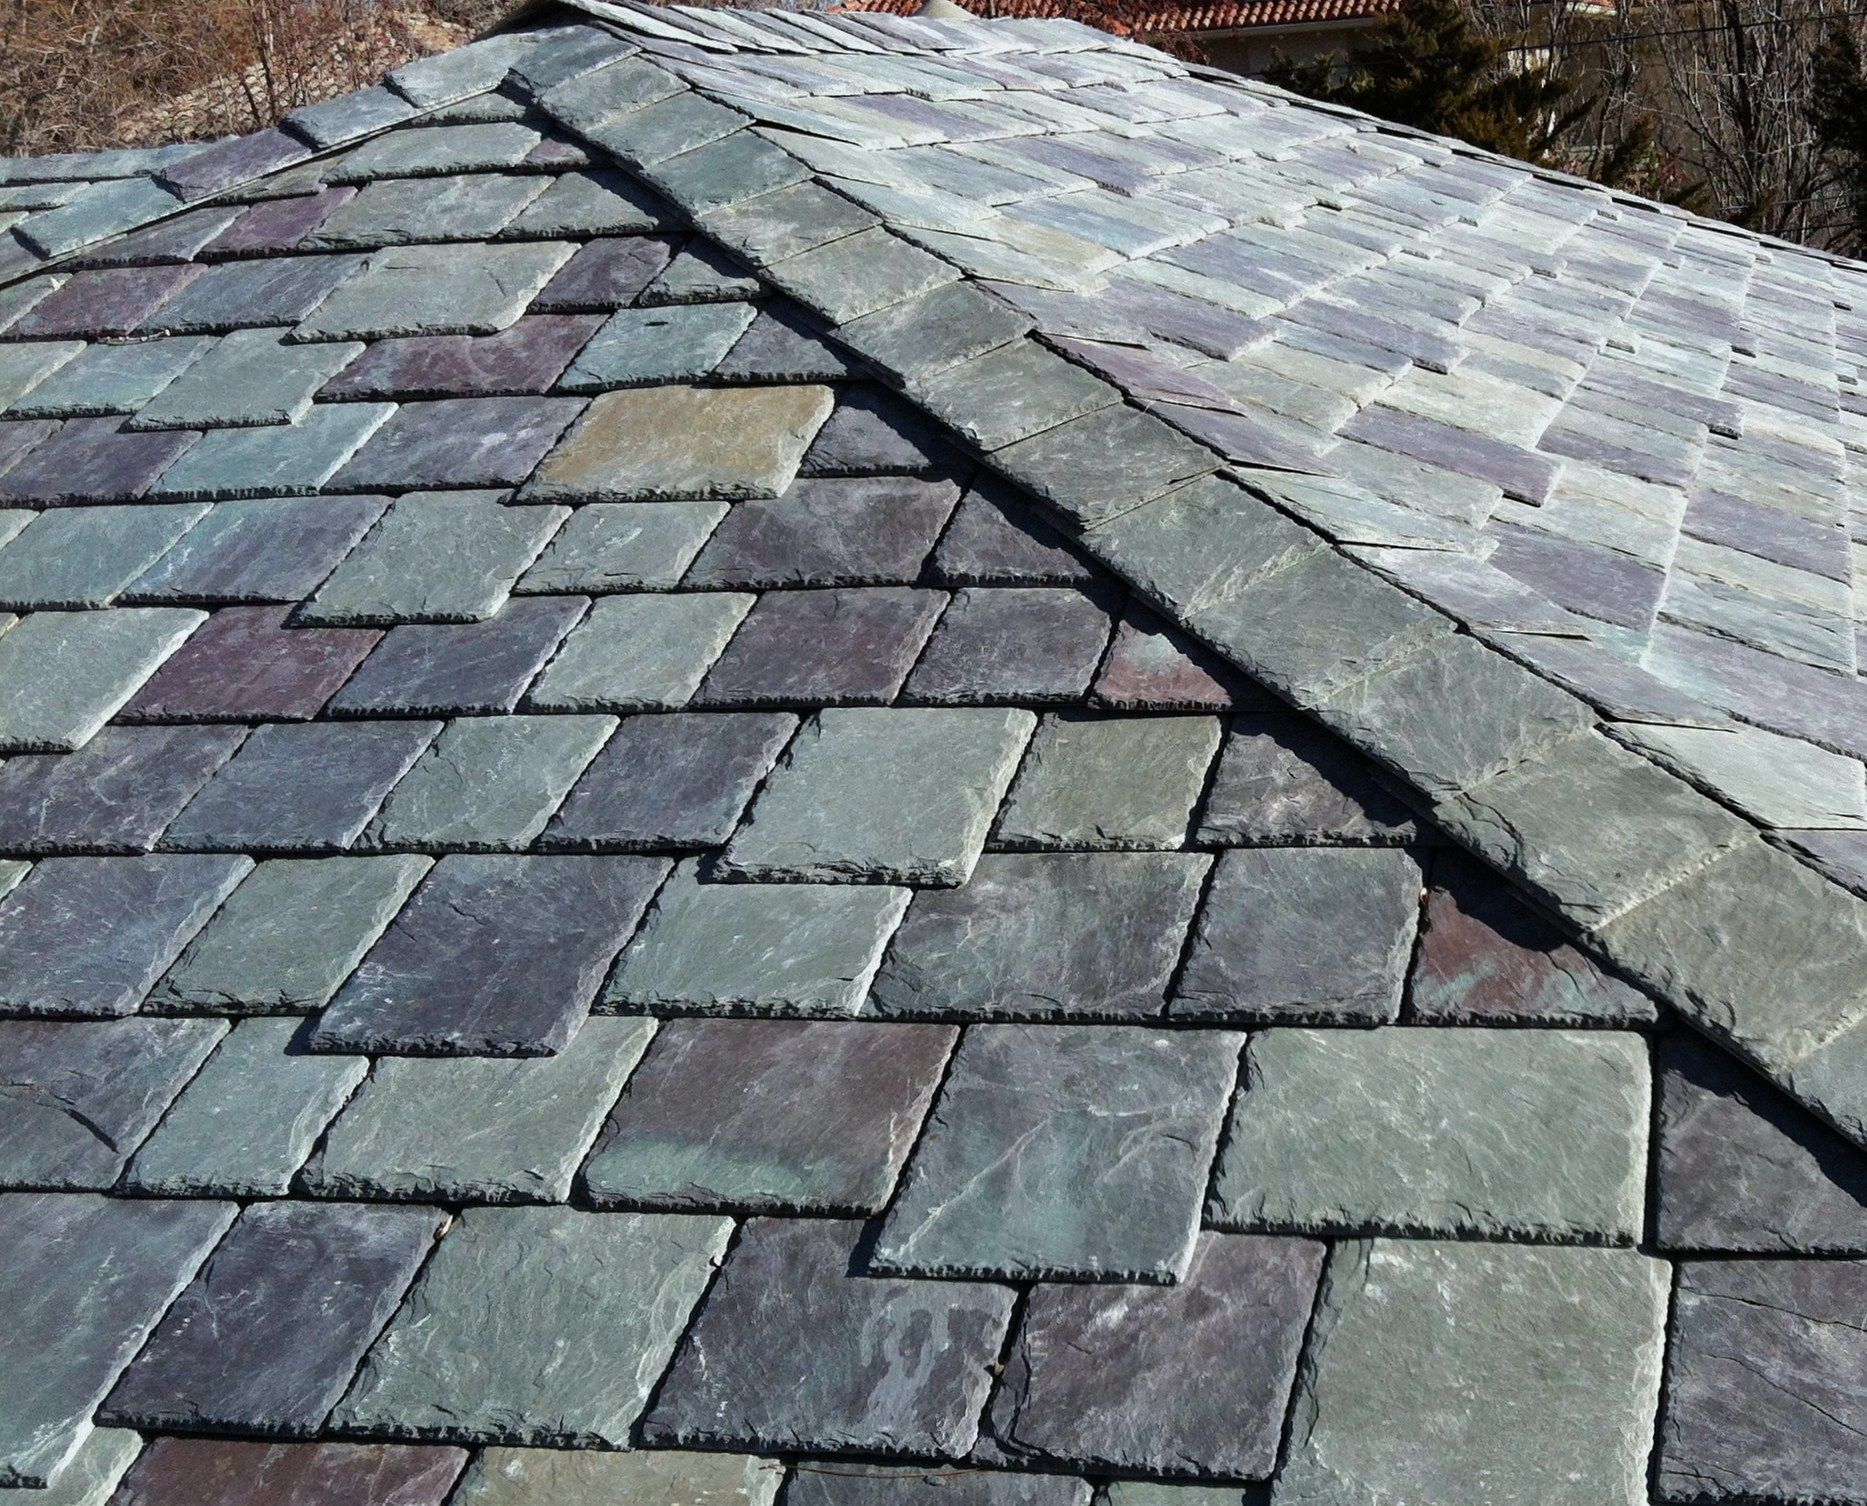 7 Marvelous Useful Tips Roofing Ideas For Pergola Unique Roofing Ideas Shed Roofing Living Room Blue Roofing Texture R Slate Roof Tiles Slate Roof Roof Colors